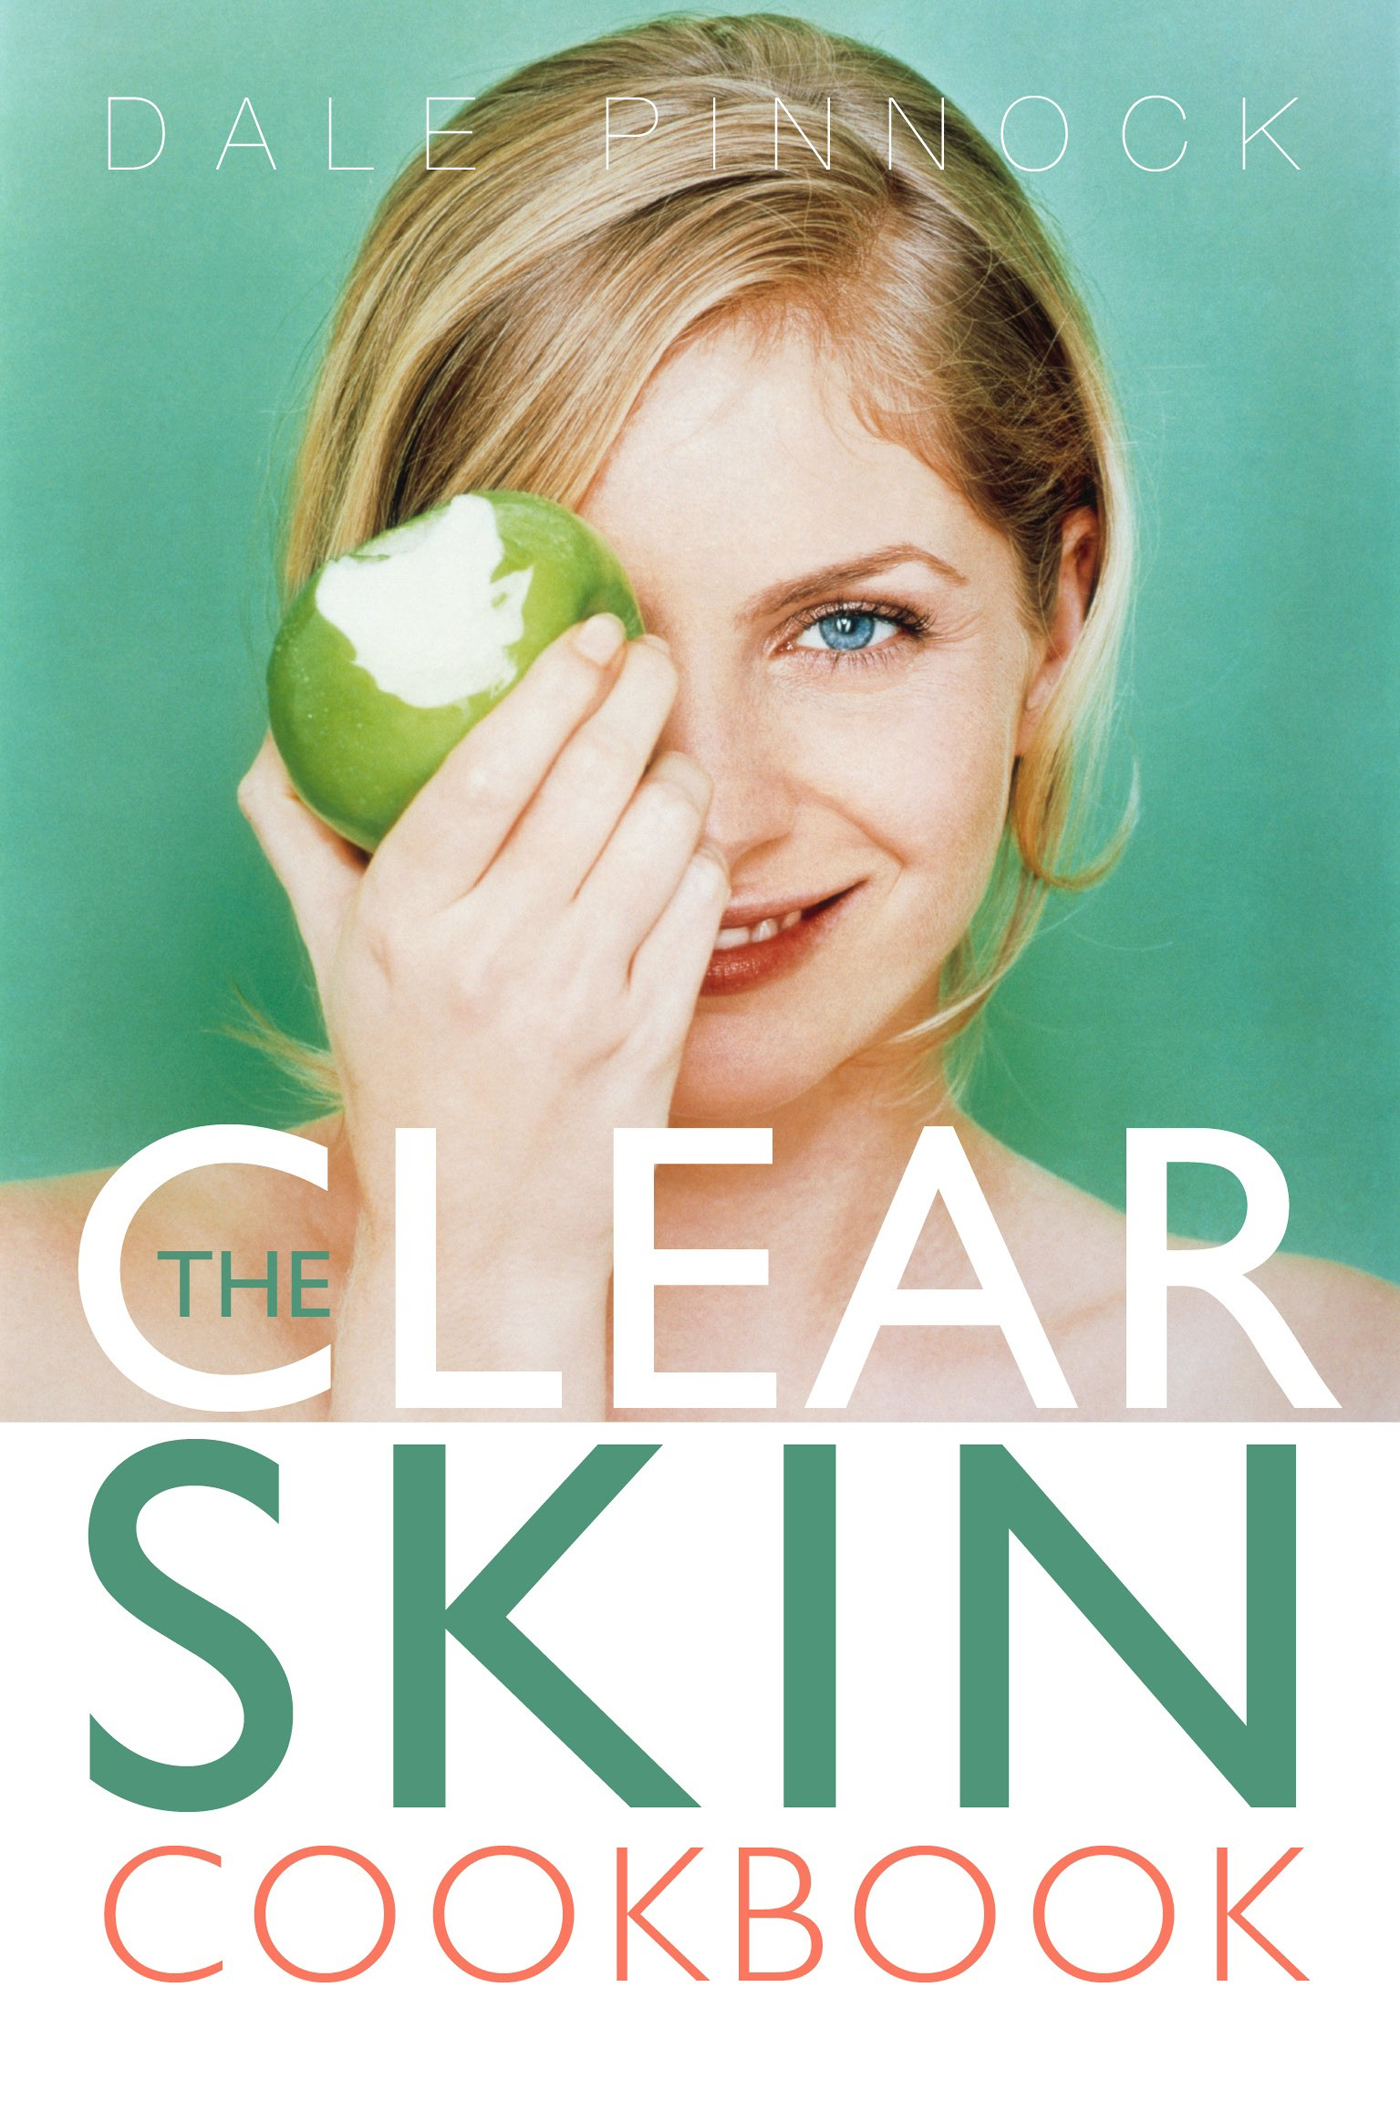 The Clear Skin Cookbook By: Dale Pinnock